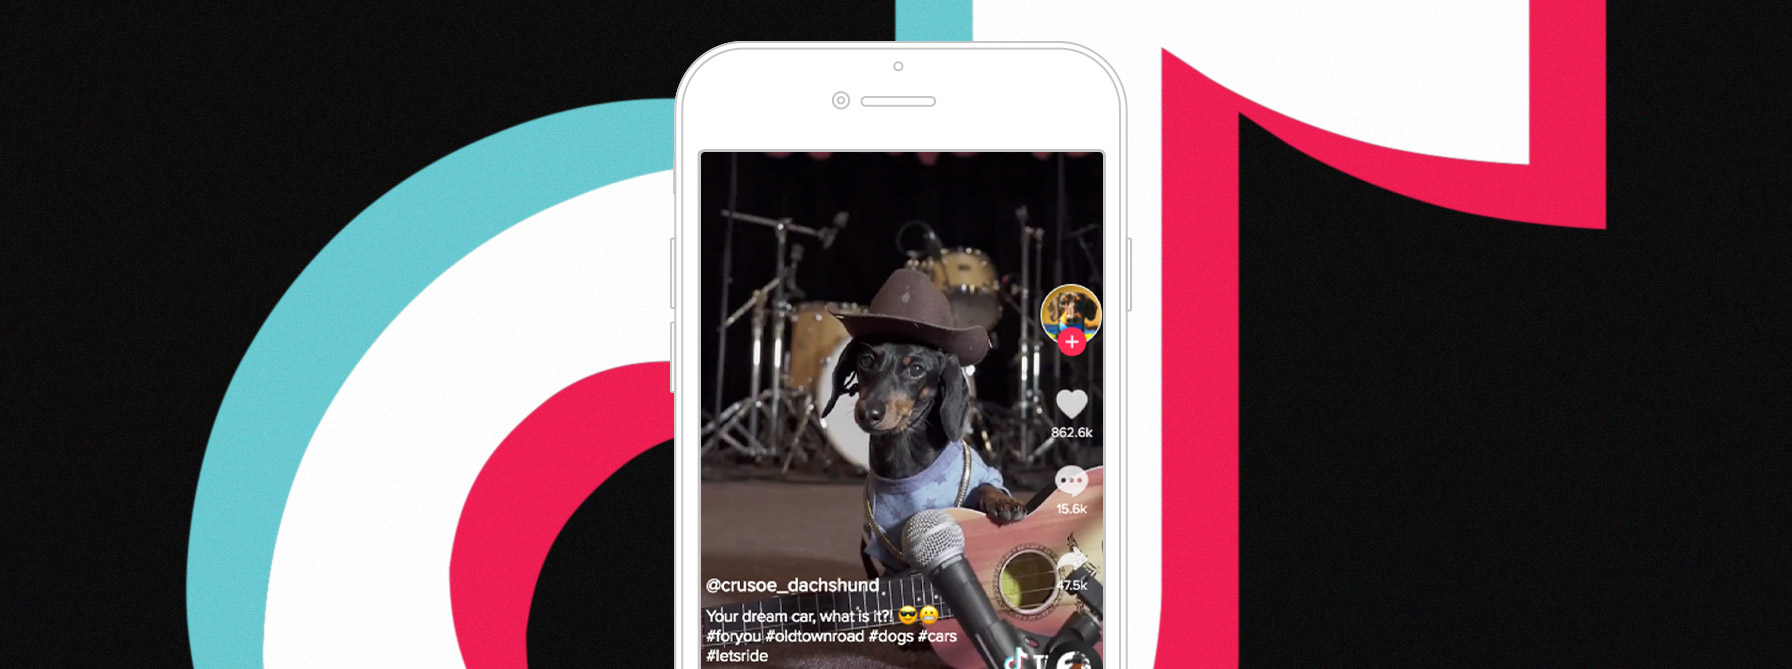 Is TikTok the right fit for finance brands?